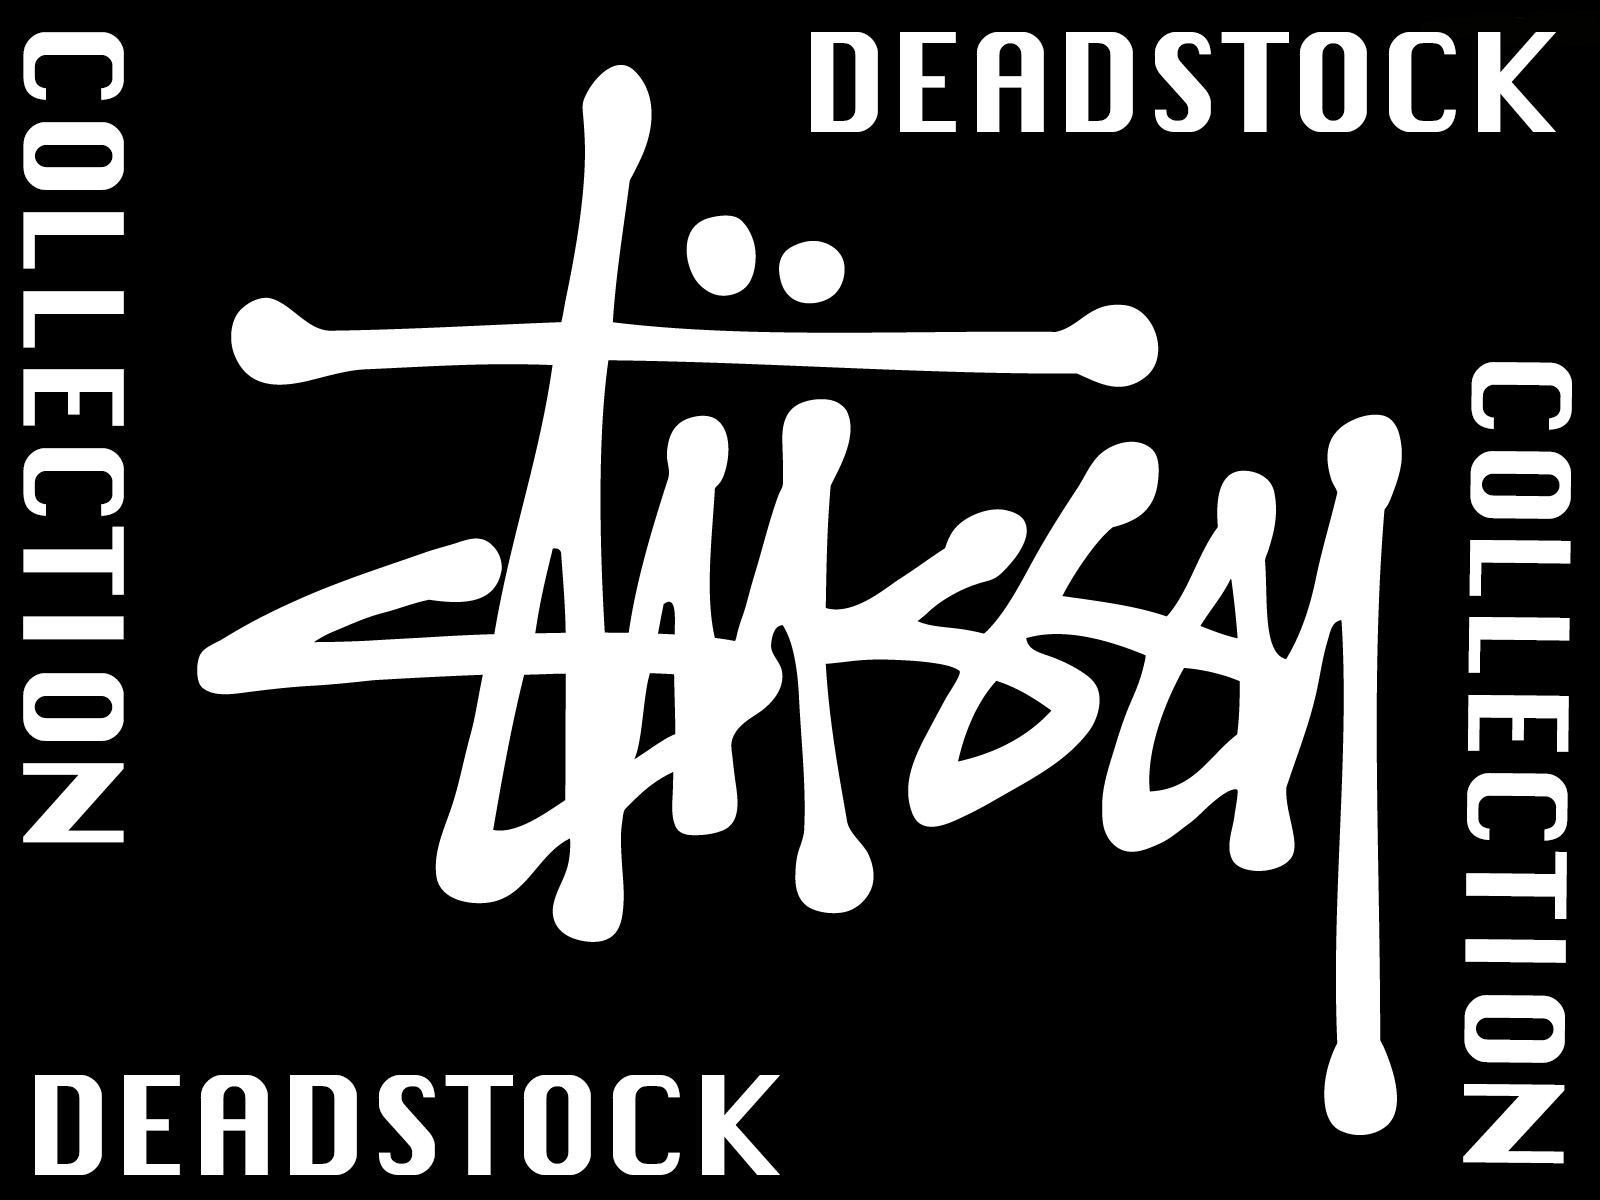 STUSSY 90s DEADSTOCK COLLECTION